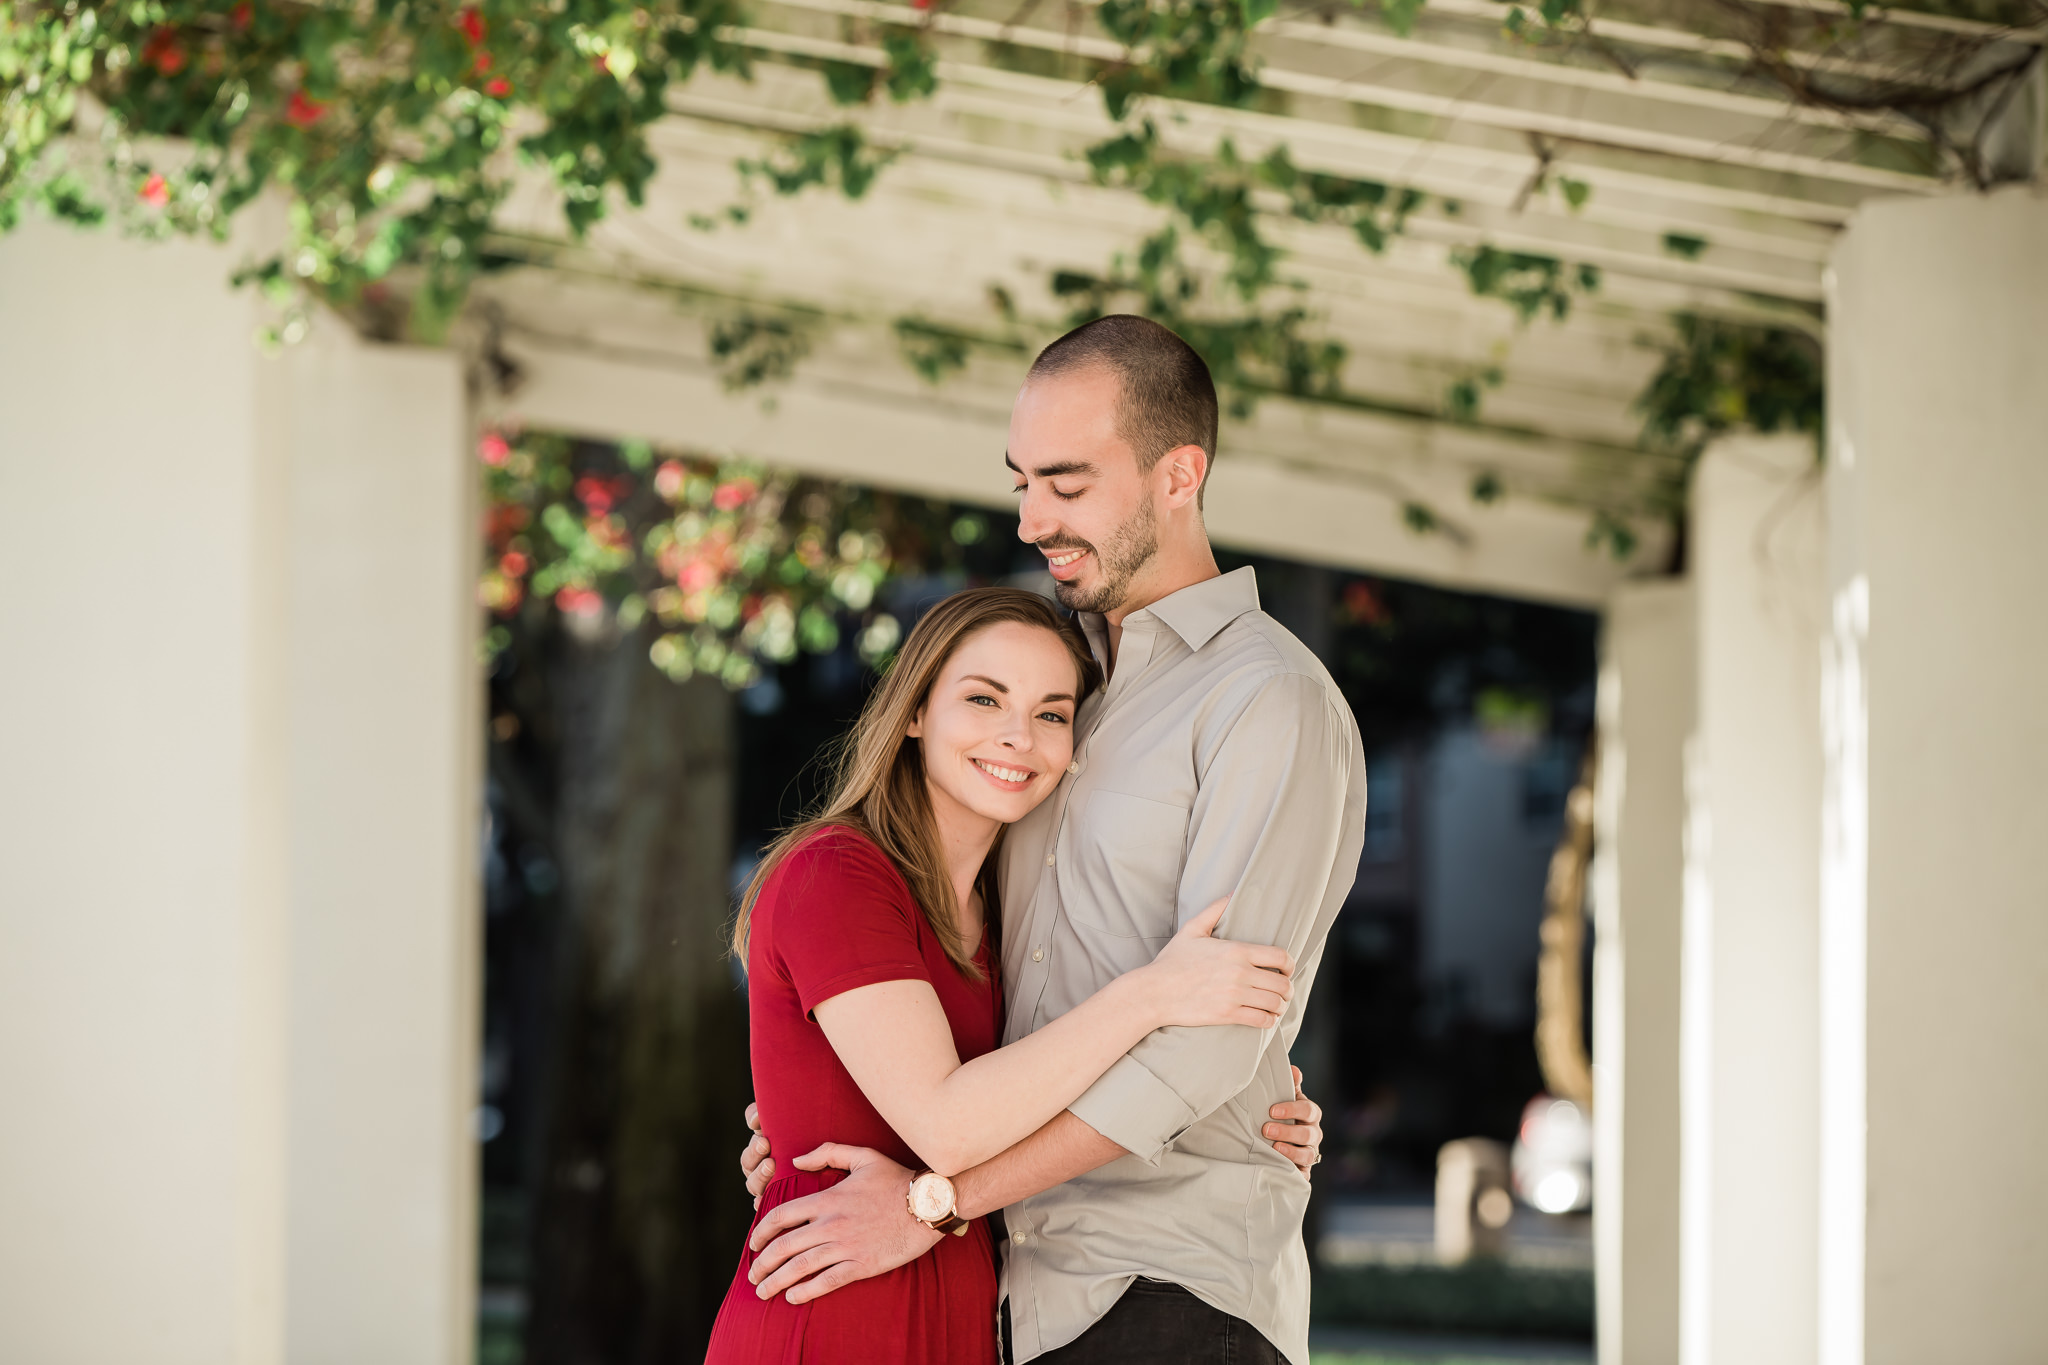 TAMPA_ENGAGEMENT_PHOTOGRAPHER_SMMZ_8605.jpg